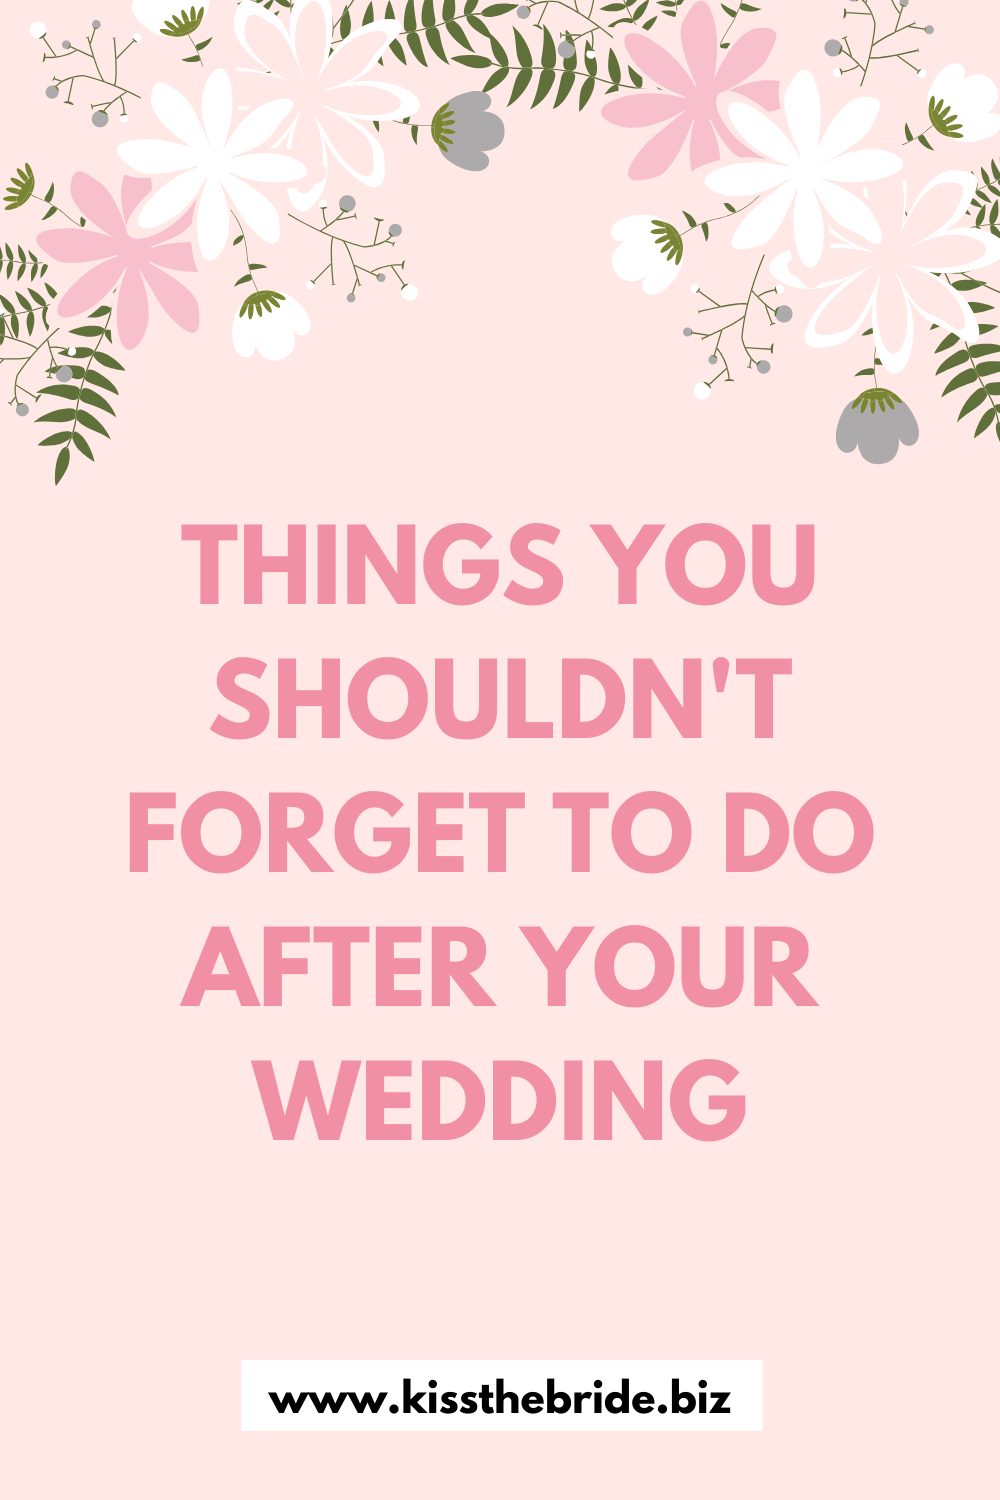 Things to do after the wedding